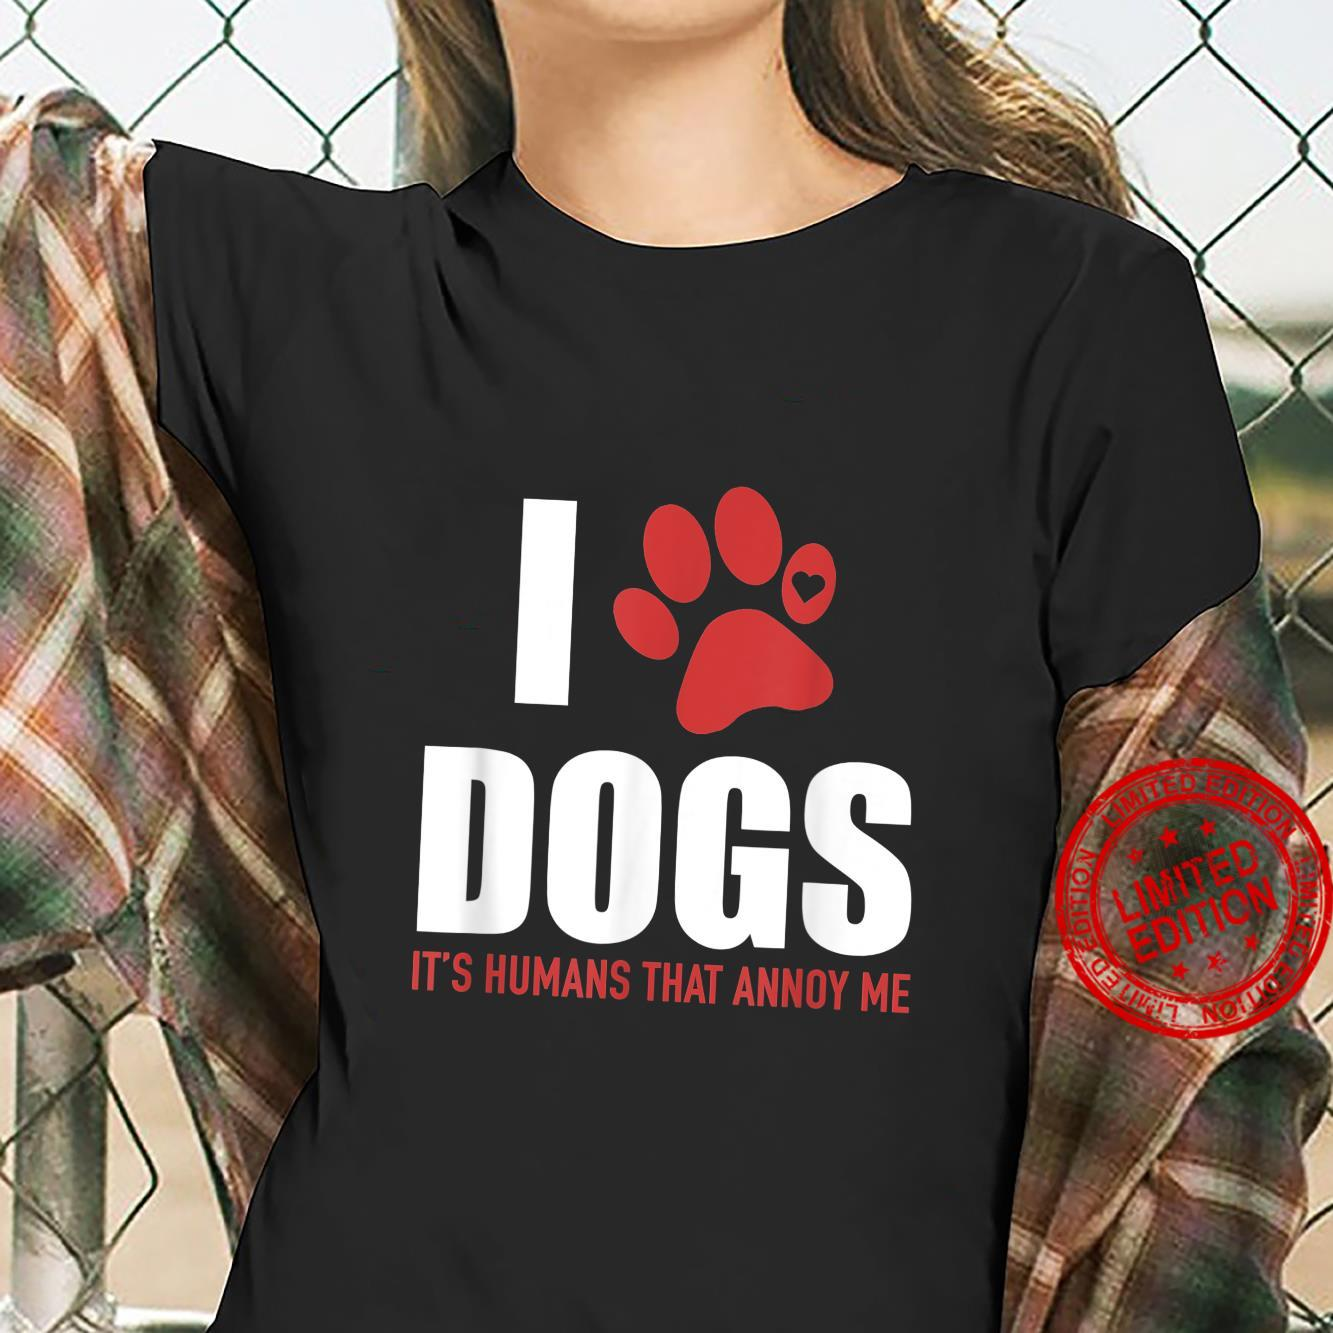 I Love Dogs It's Humans That Annoy Me, Shirt ladies tee